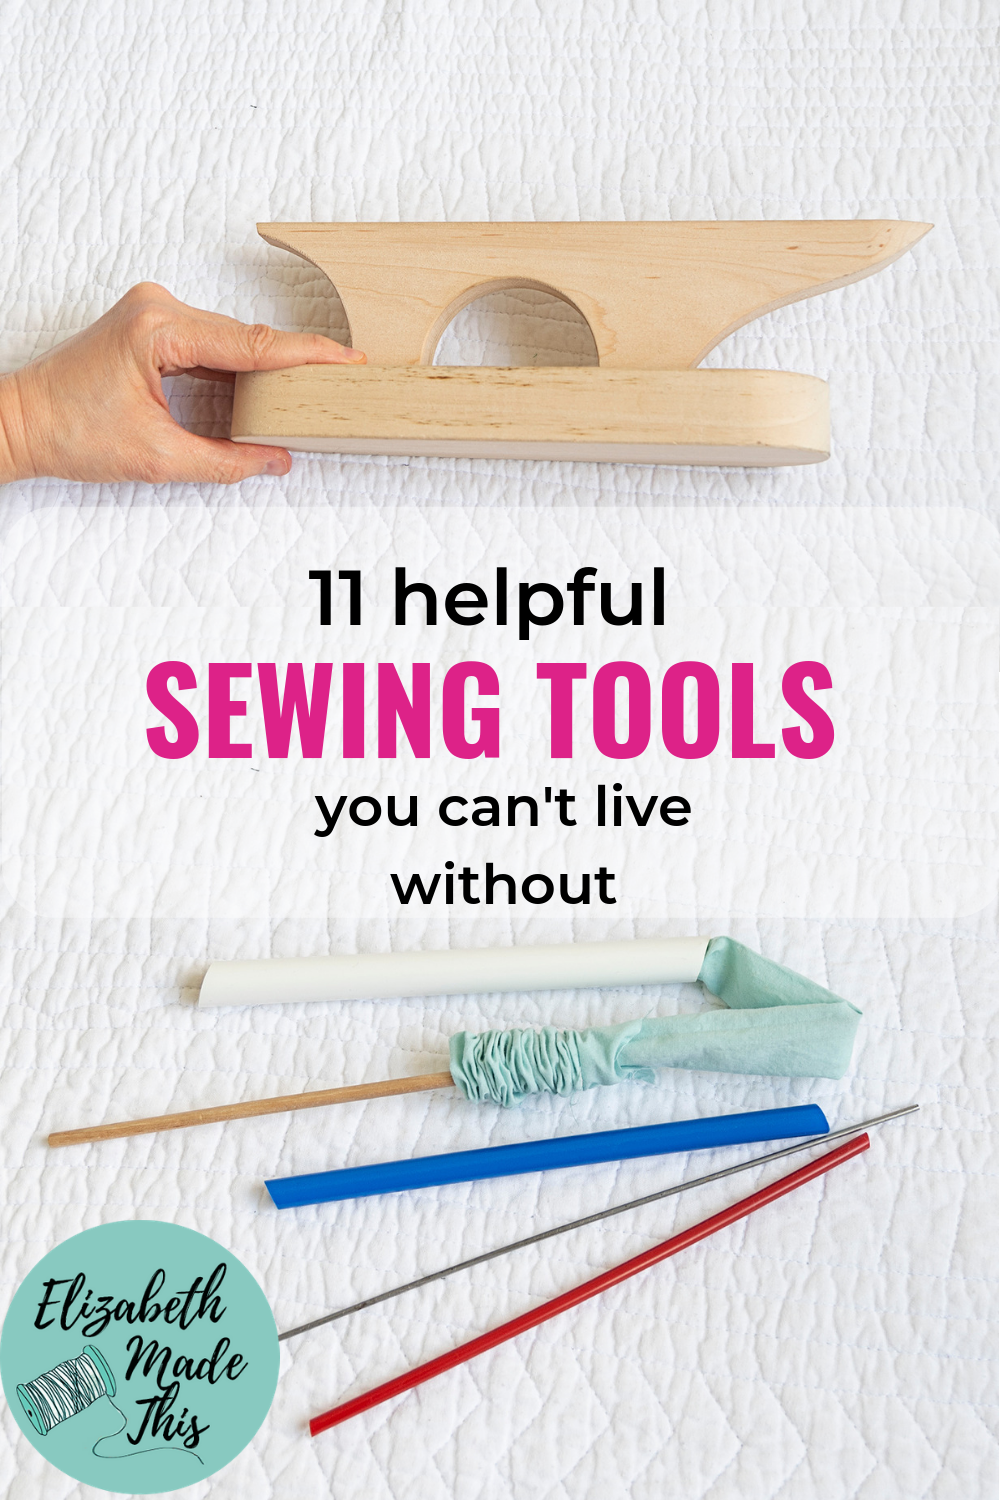 Photo of Must have helpful sewing tools and how to use them